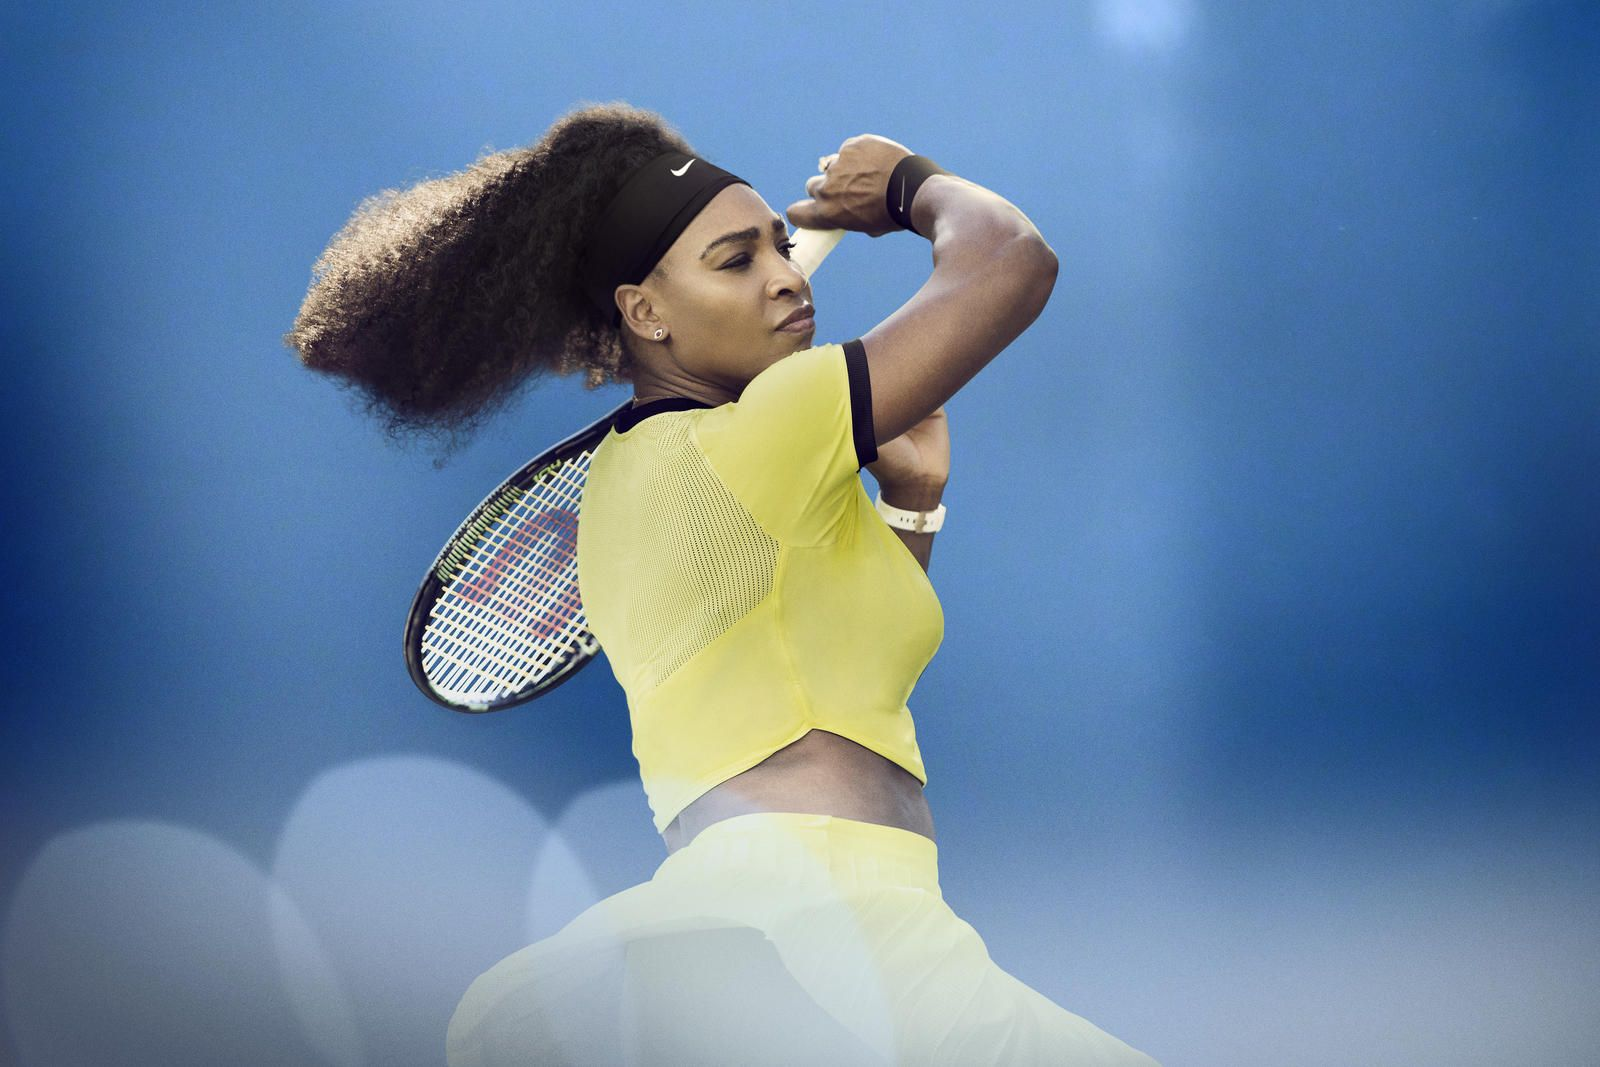 World number one Serena Williams will don the NikeCourt Premier Top and  Victory Skirt while on court in Melbourne: Shop Serena's outfit Serena's